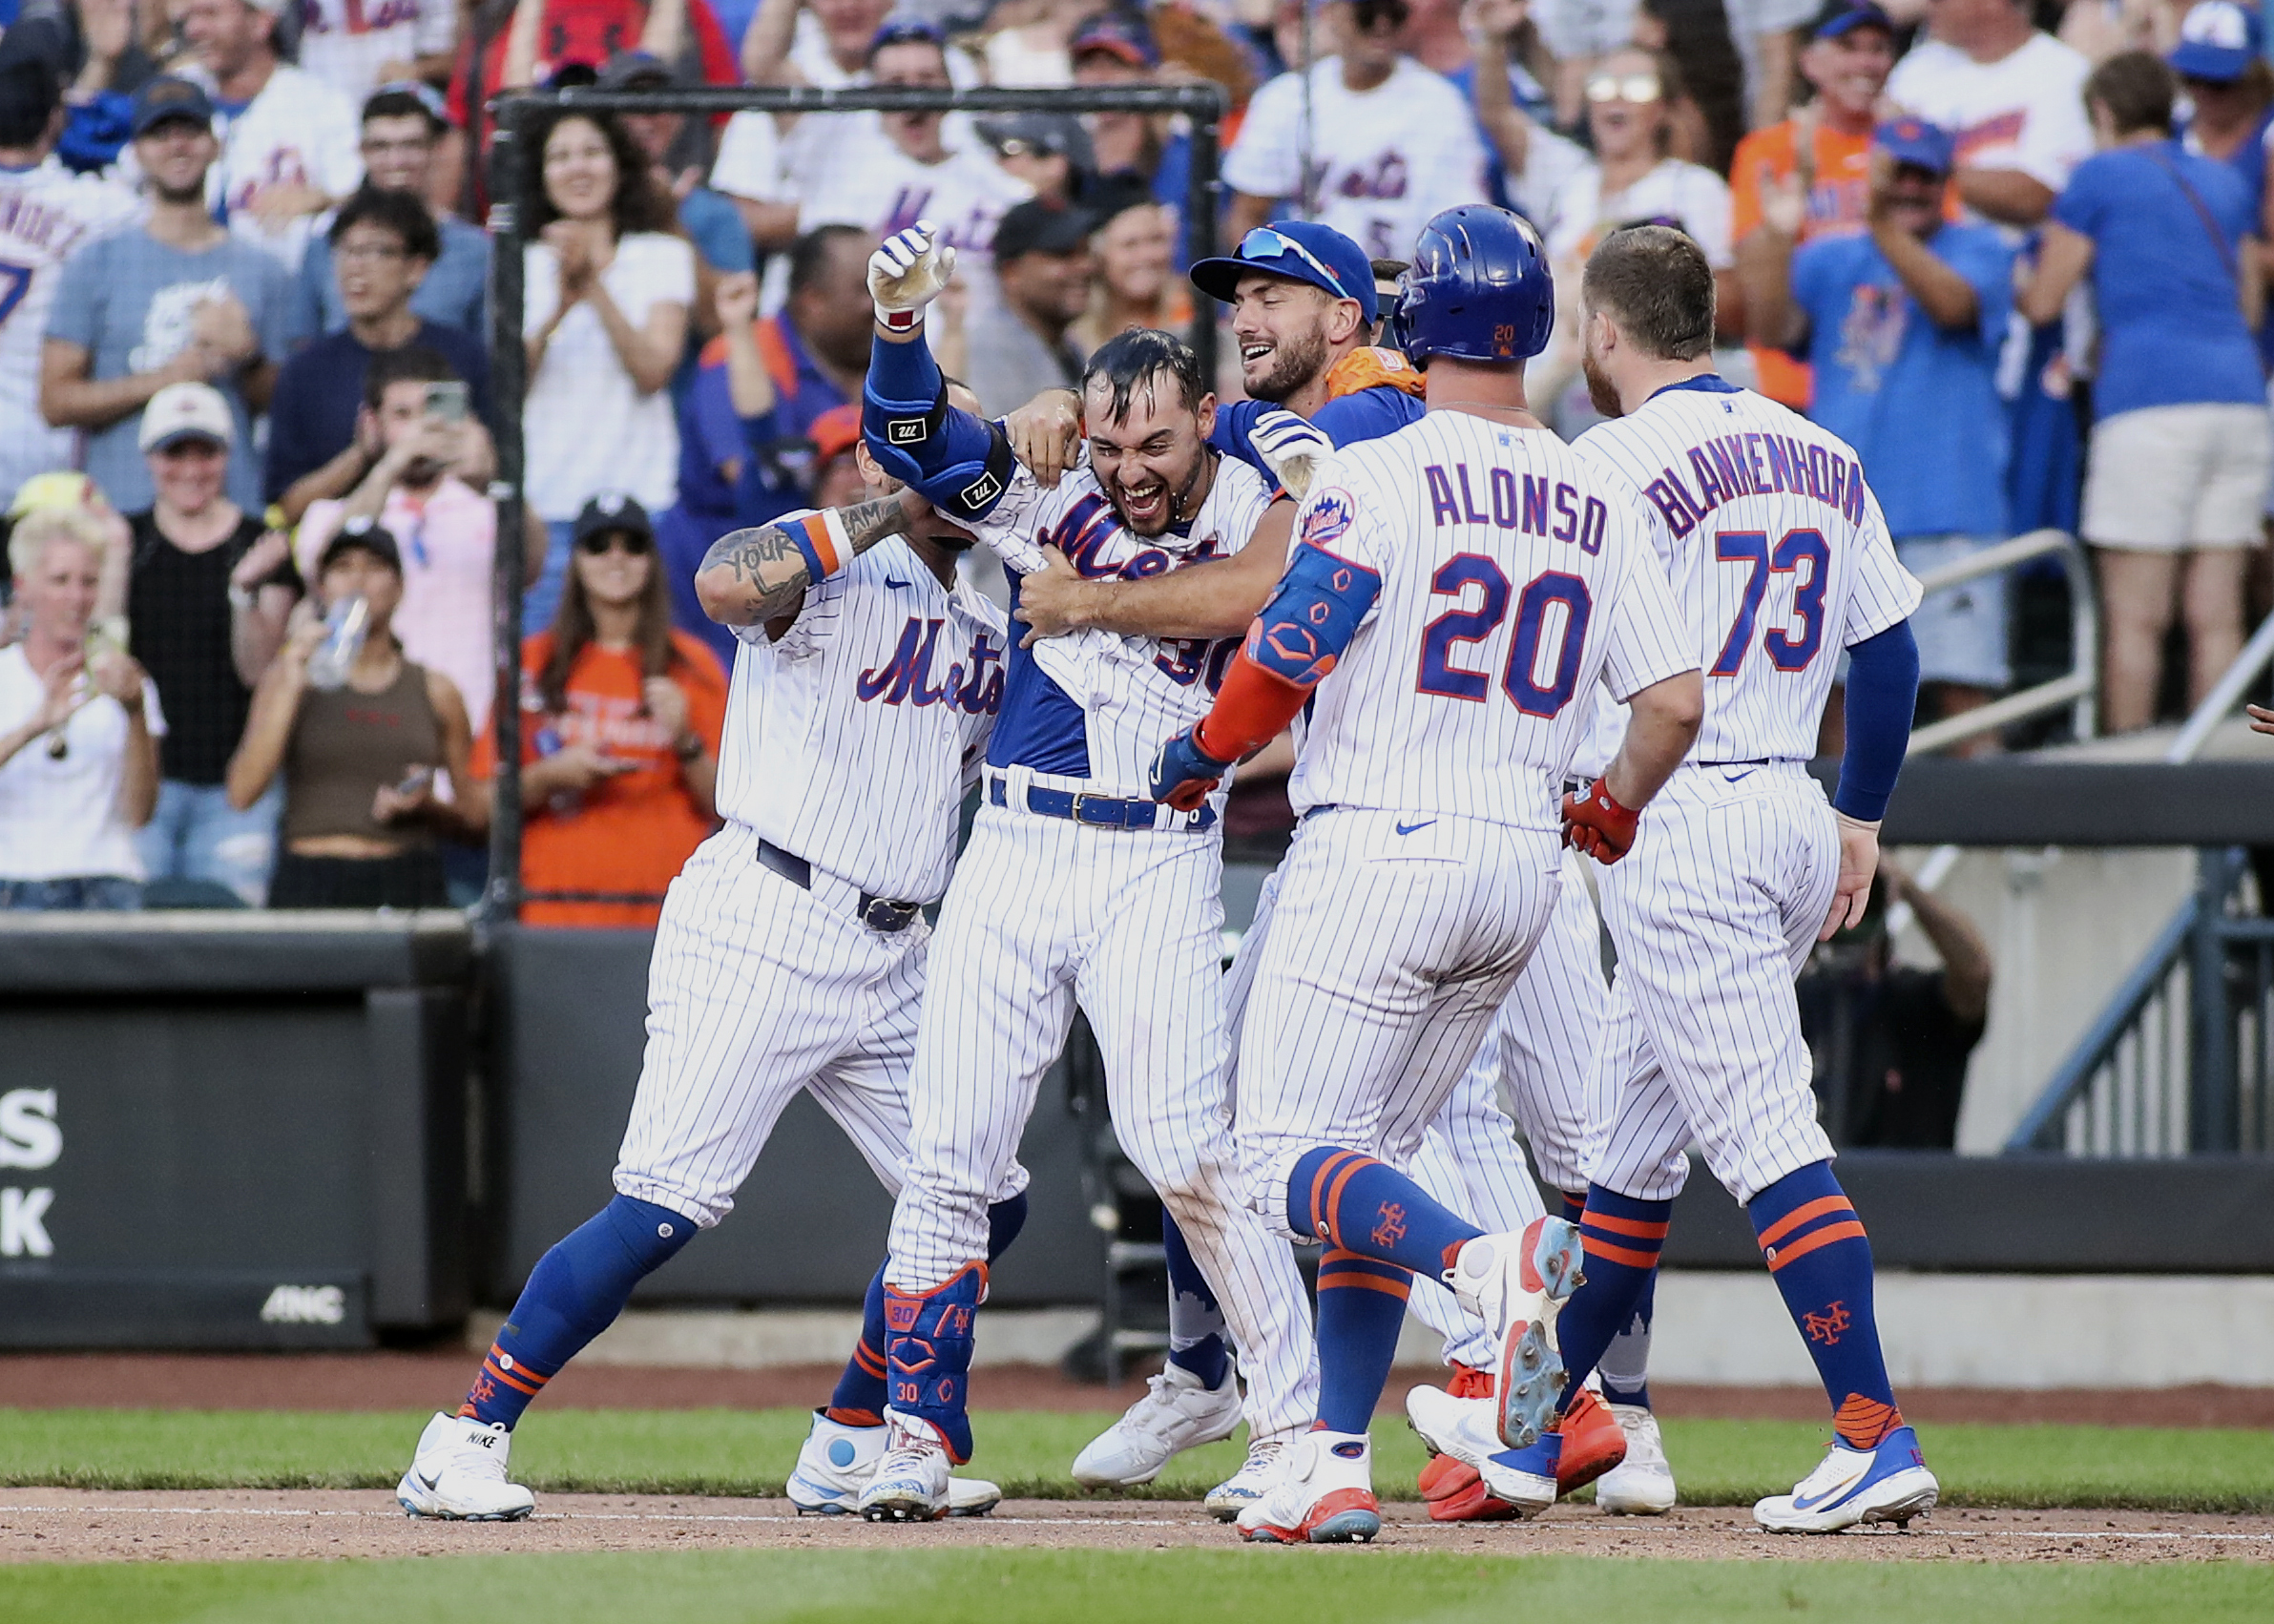 New York Mets rally on three separate occasions to topple Philadelphia Phillies 4-3